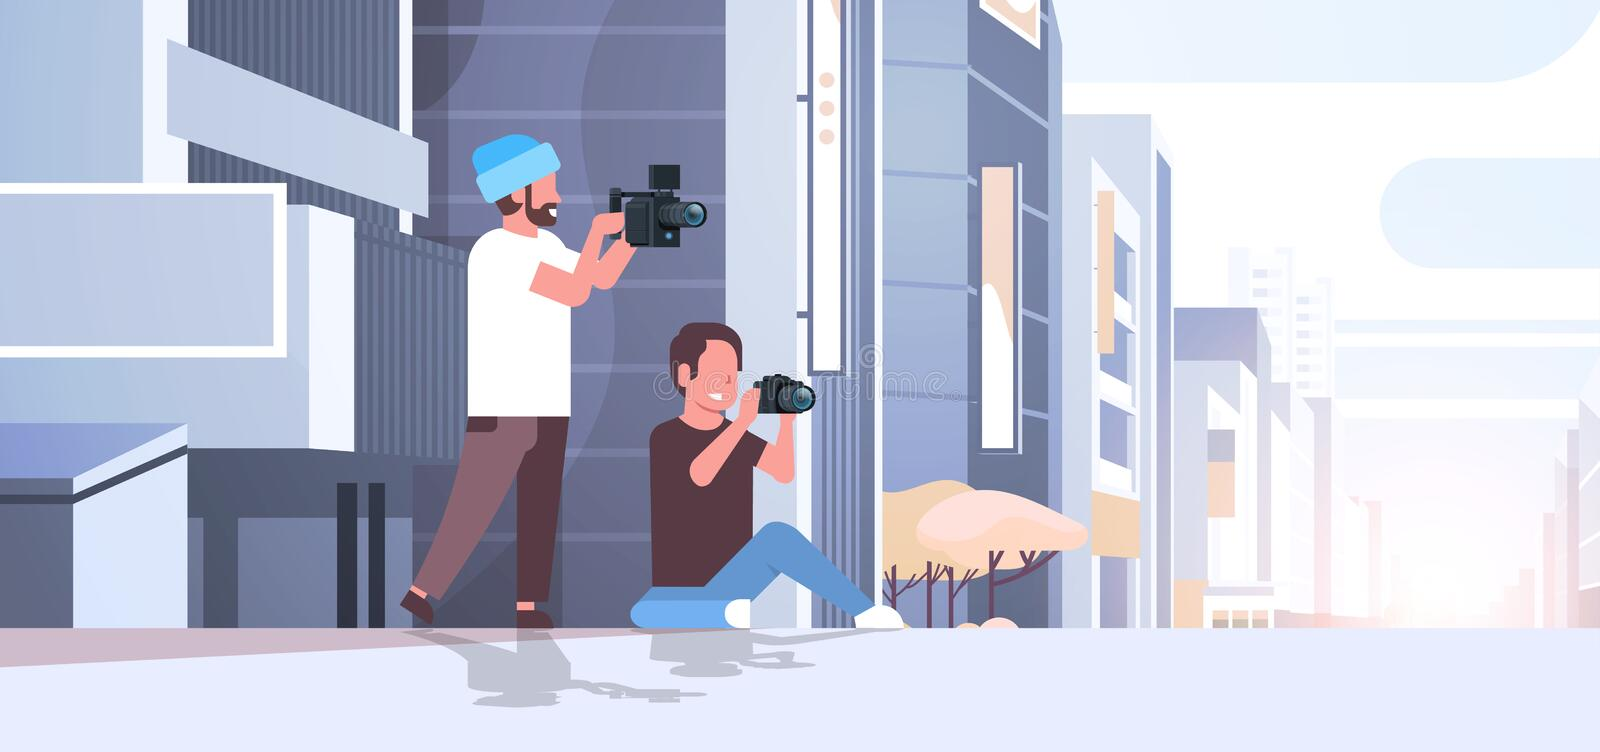 Photographer and cameraman using cameras shooting video taking pictures working together over modern city buildings. Exterior cityscape background horizontal vector illustration